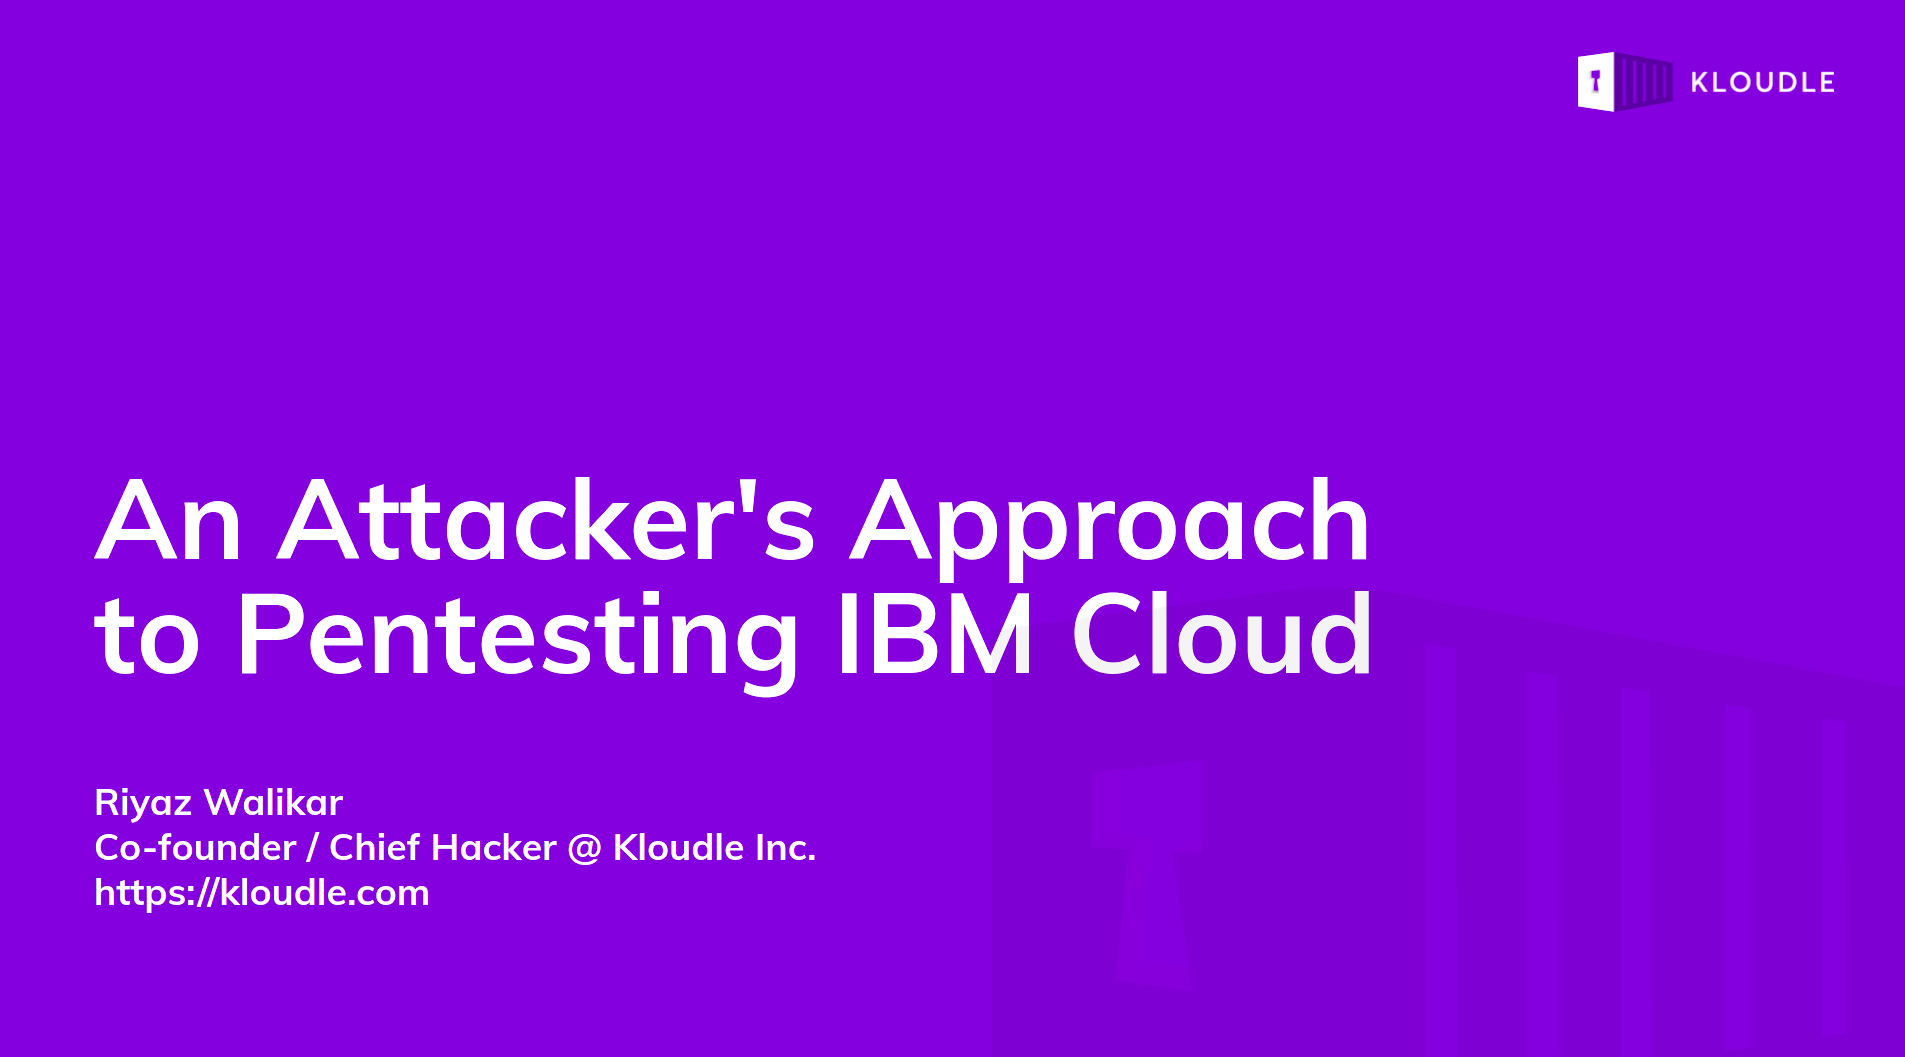 An Attacker's Approach to Pentesting IBM Cloud - fwd:cloudsec 2021